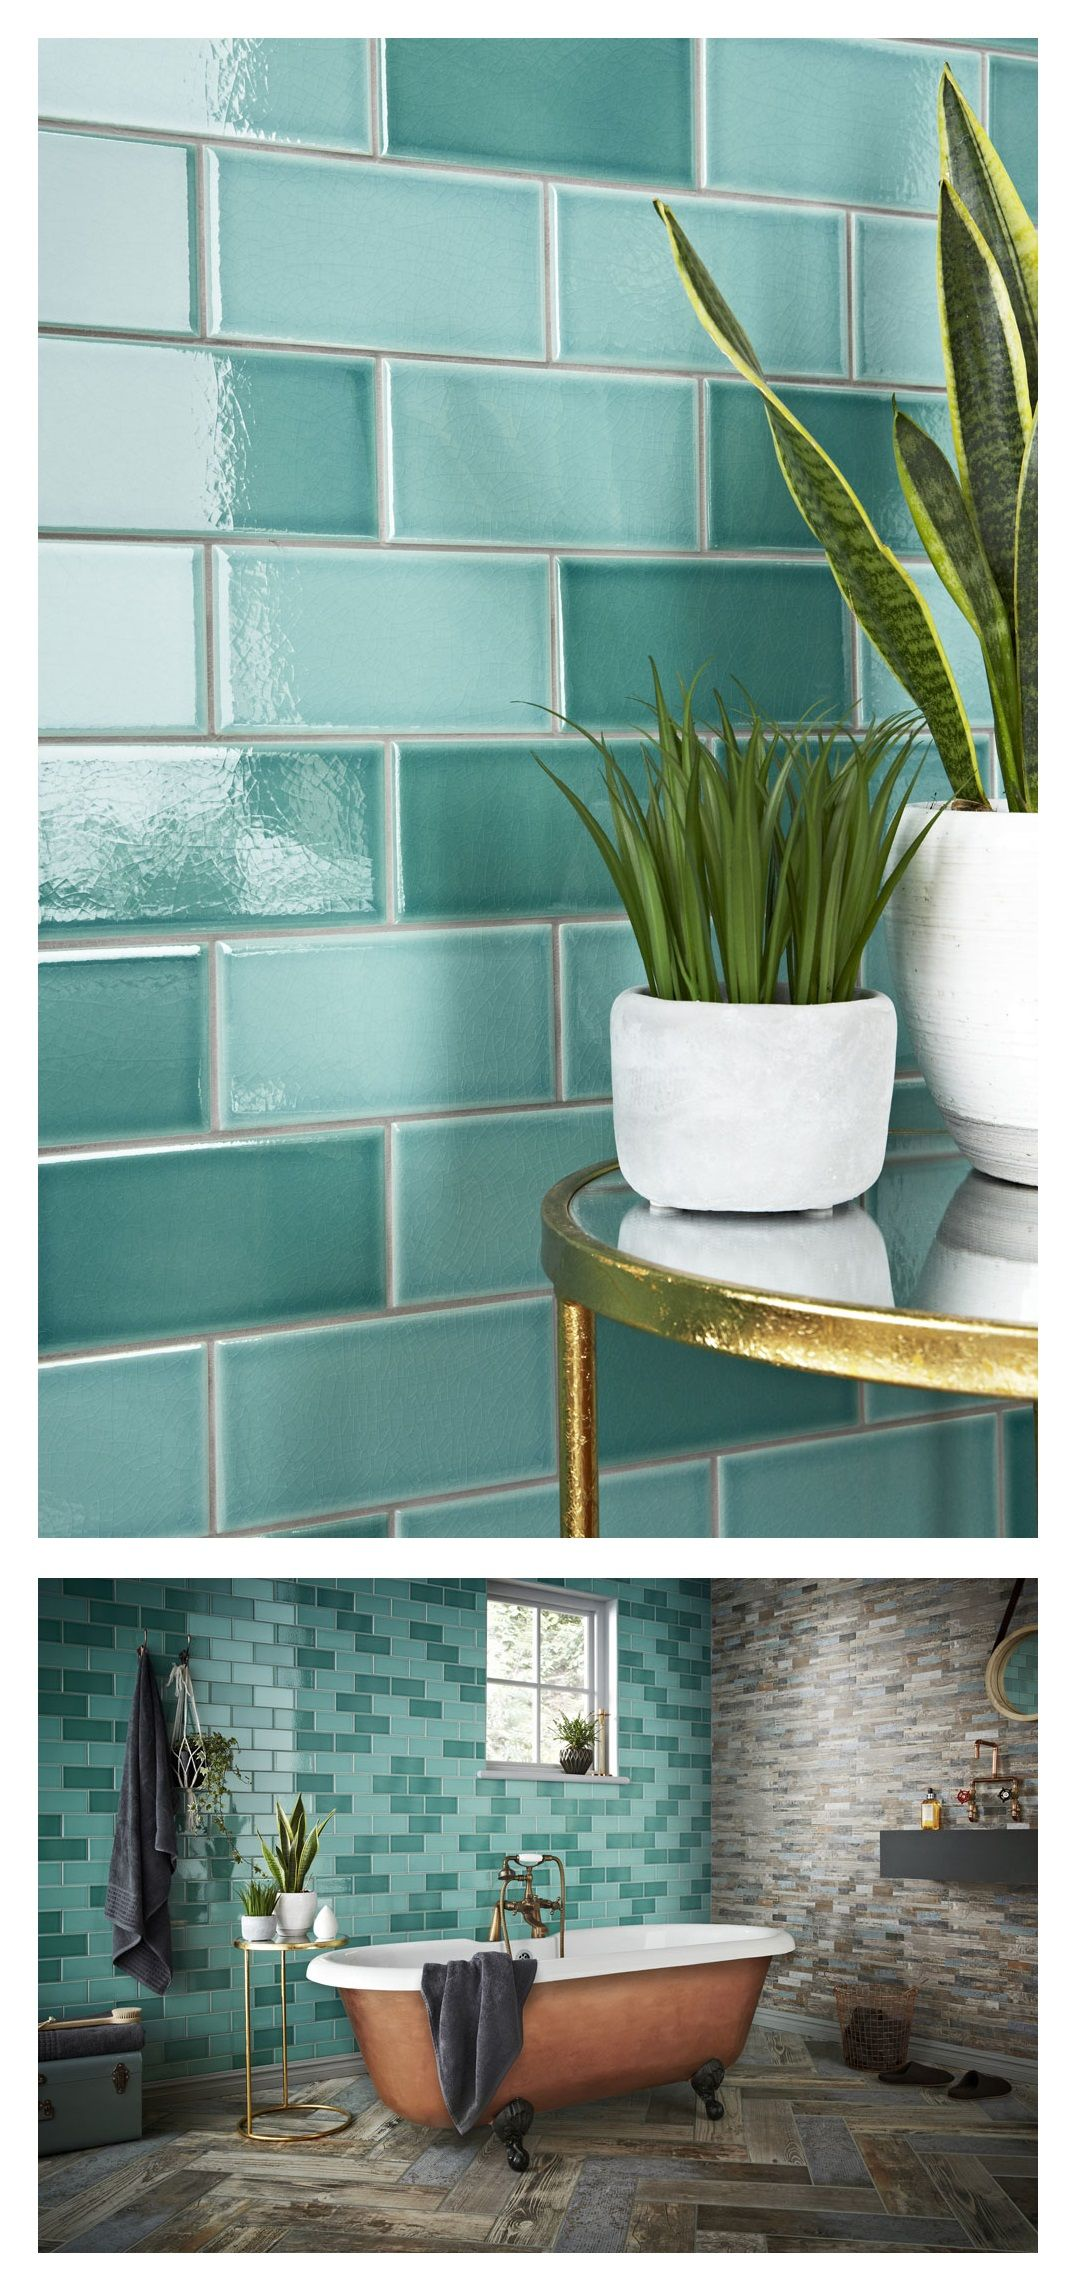 Teal tiles this years must have colour metro tiles teal and teal tiles this years must have colour dailygadgetfo Gallery